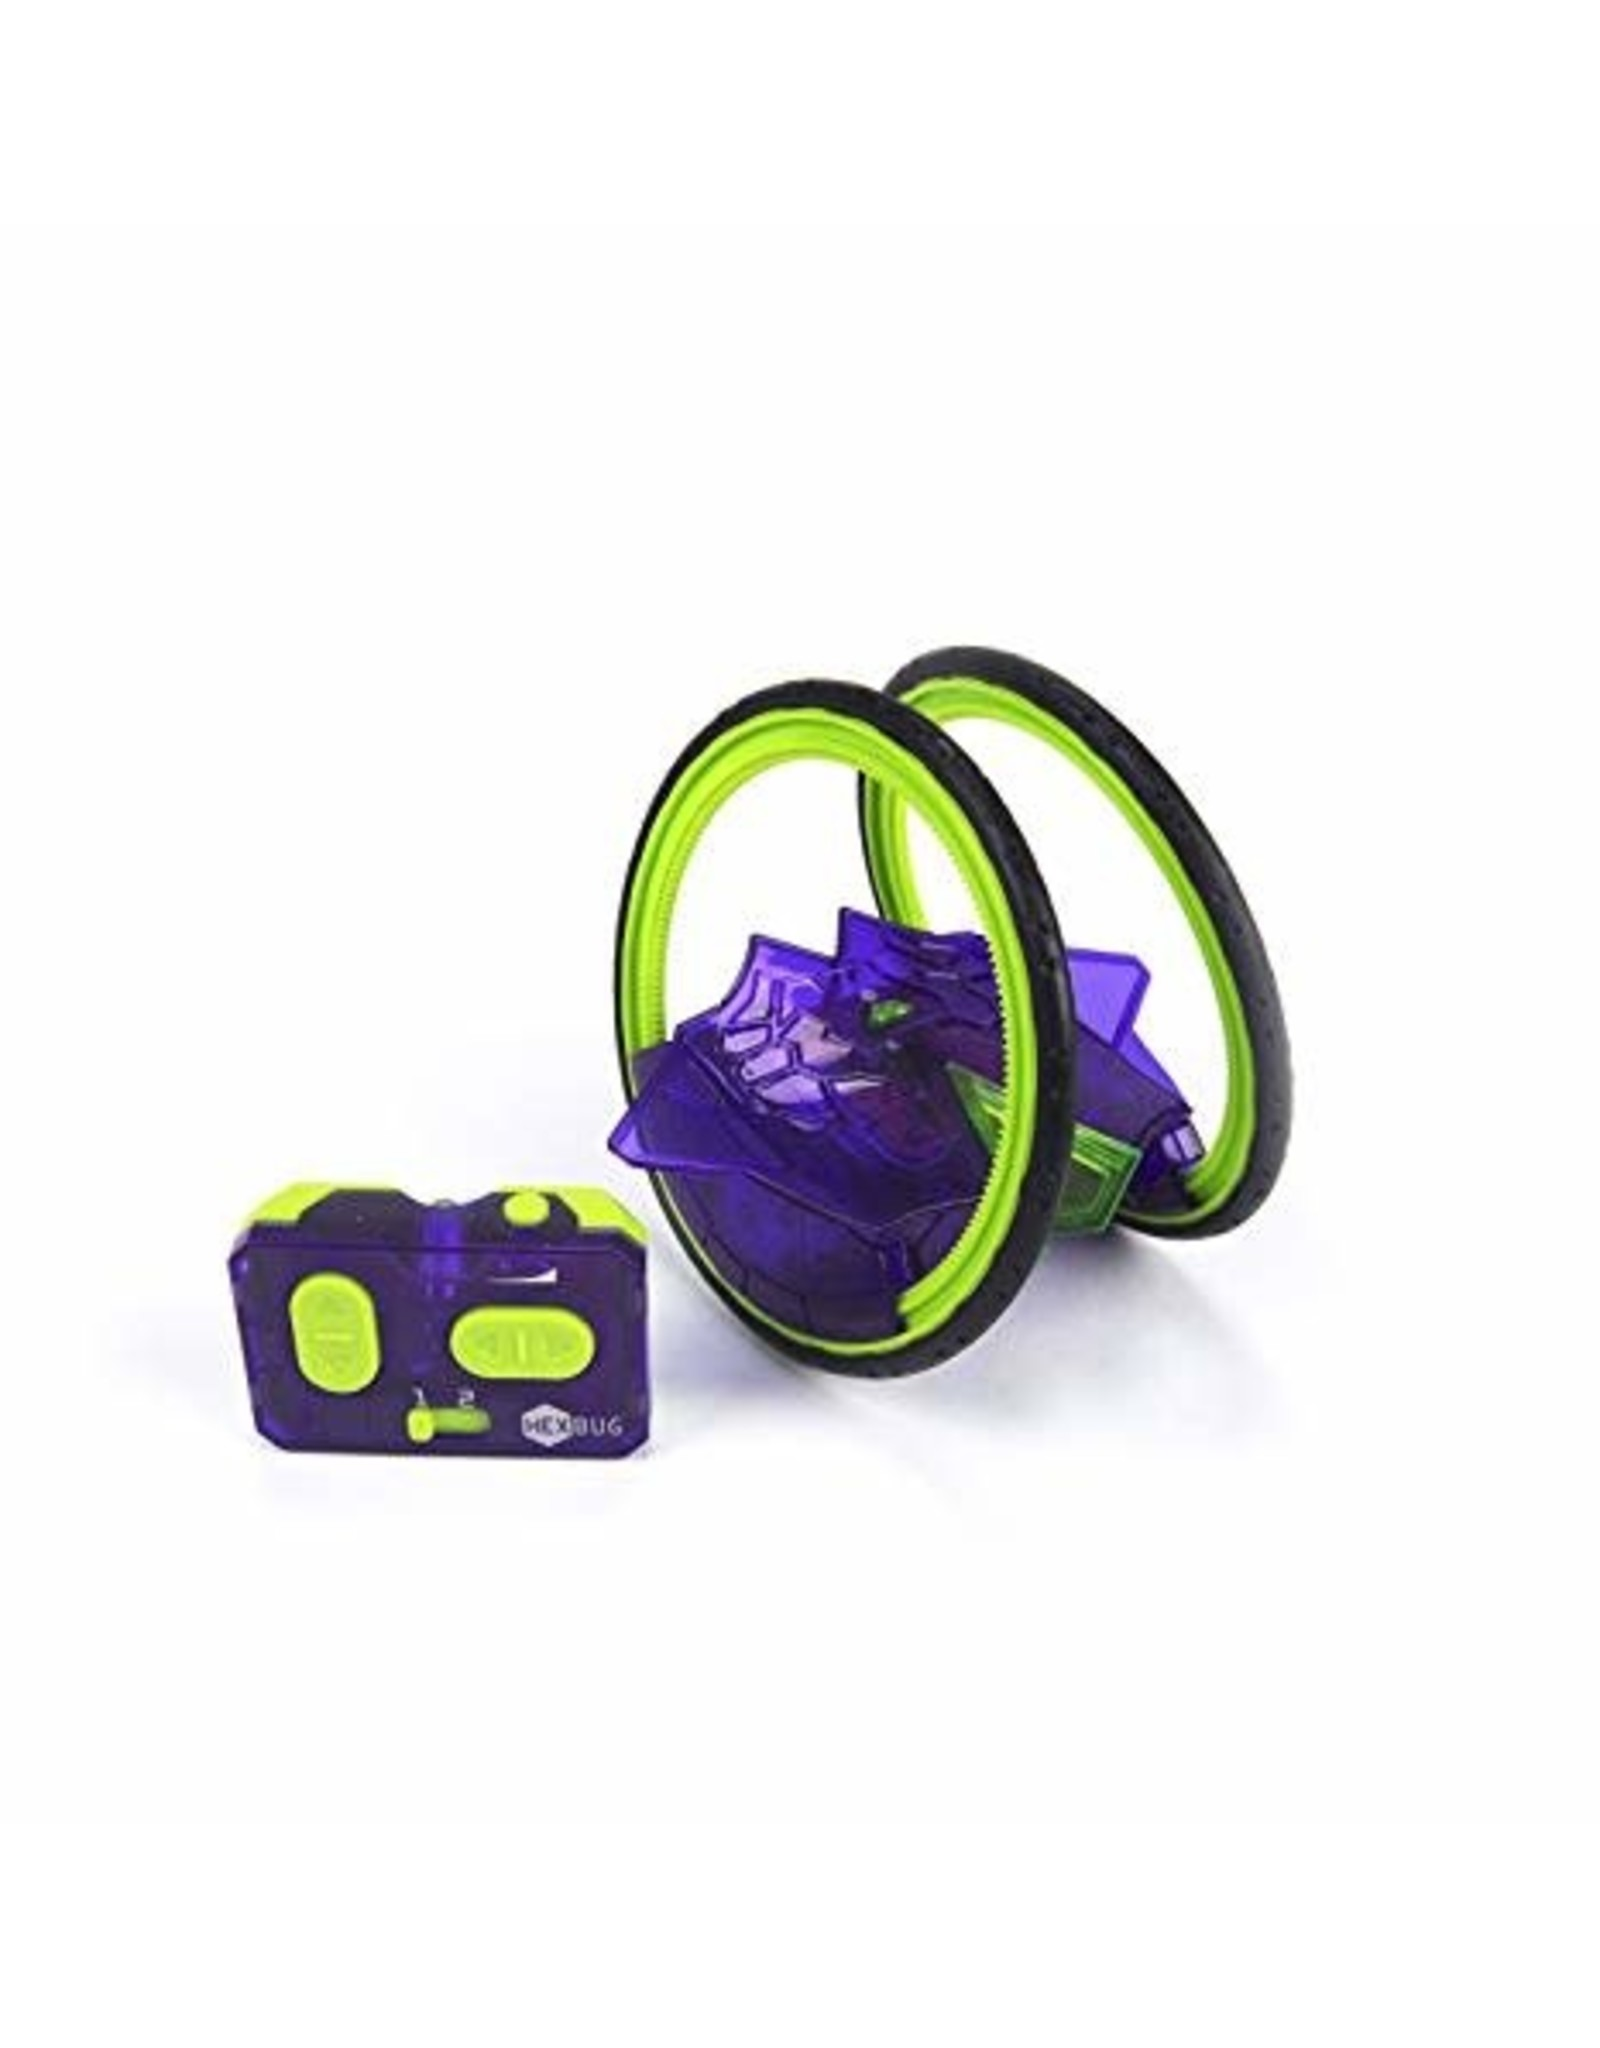 Innovation First HEXBUG Ring Racer Robot